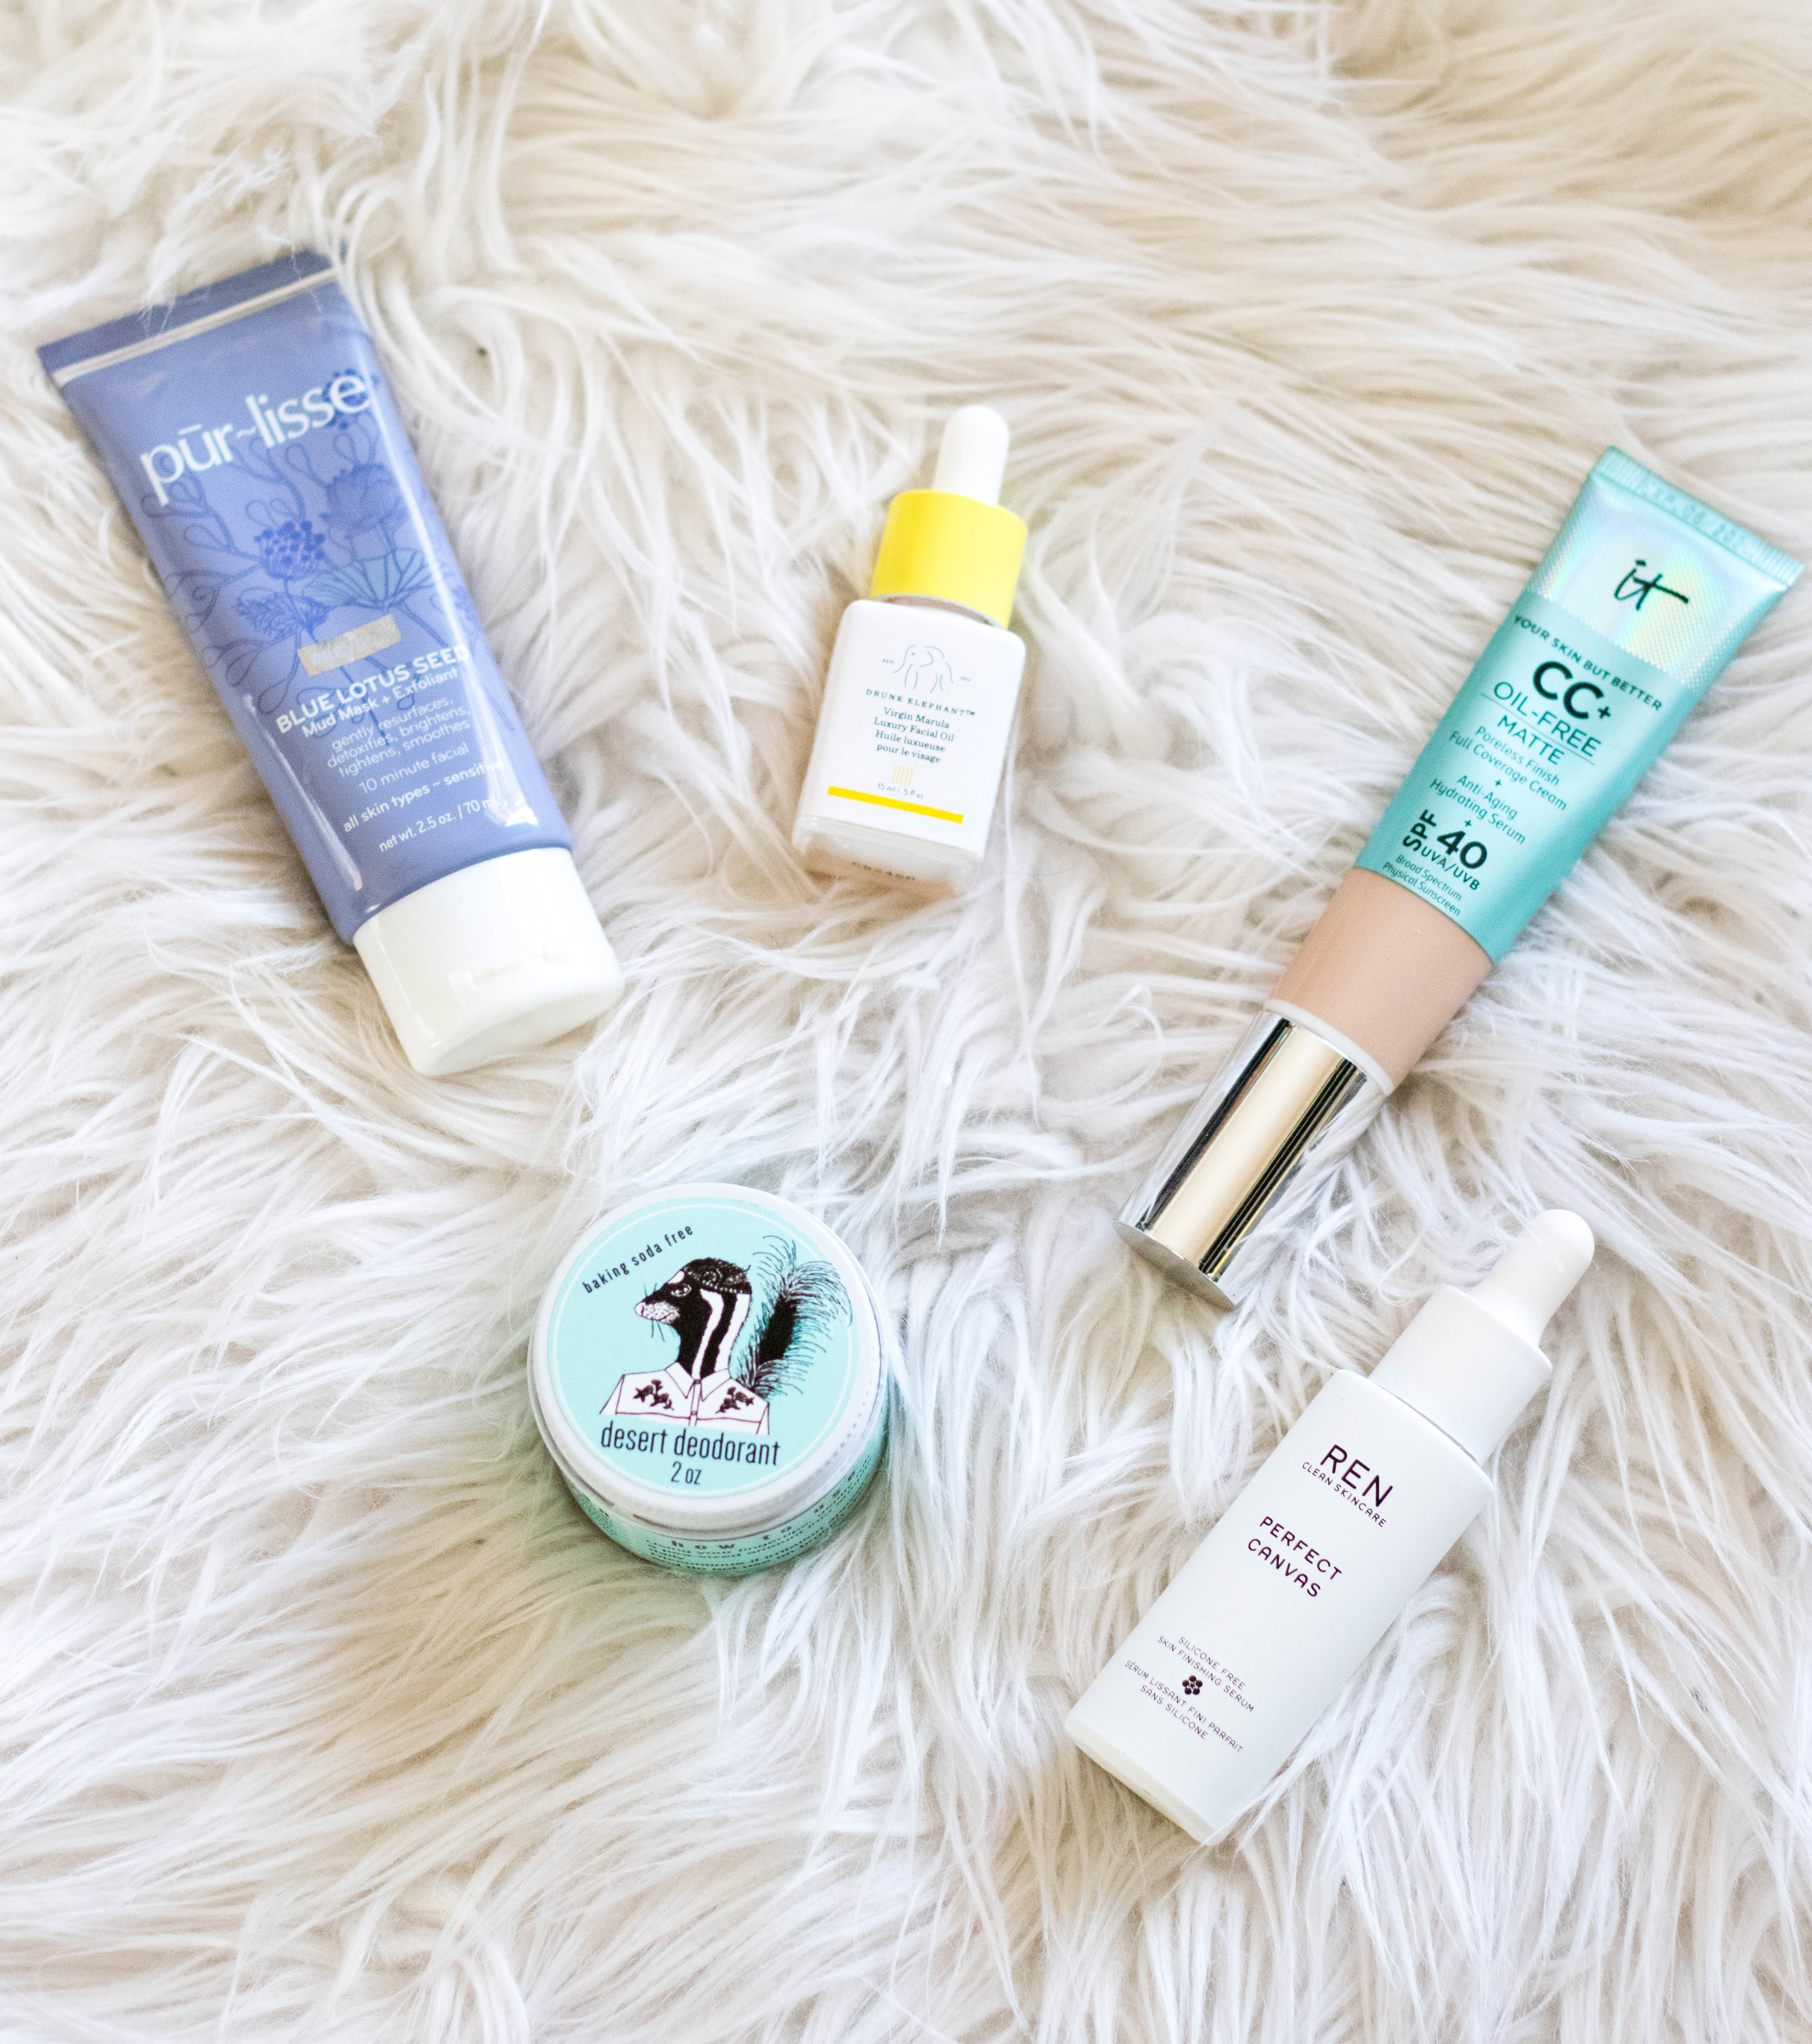 November beauty hits and misses #skincarefavorites #beautyfavorites #cleanbeauty